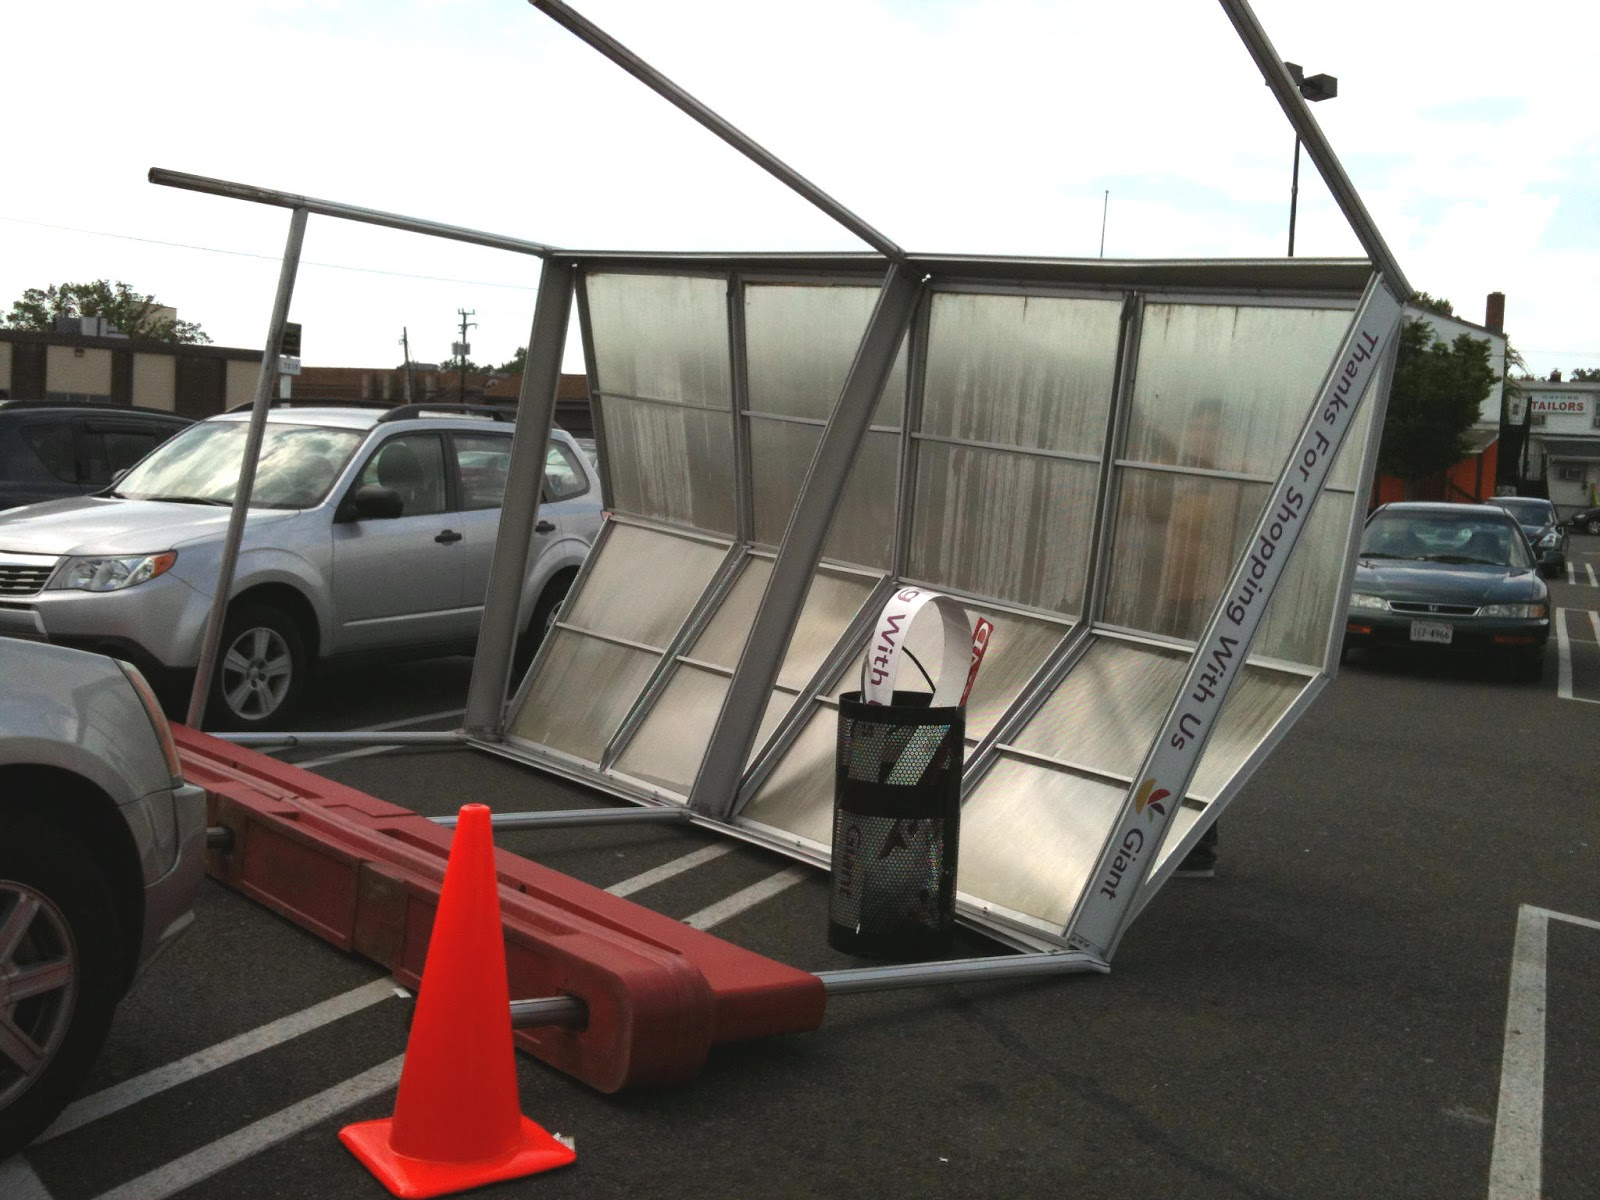 Metal Shelter Grocery Cart : The annandale scene around a town winds destroy